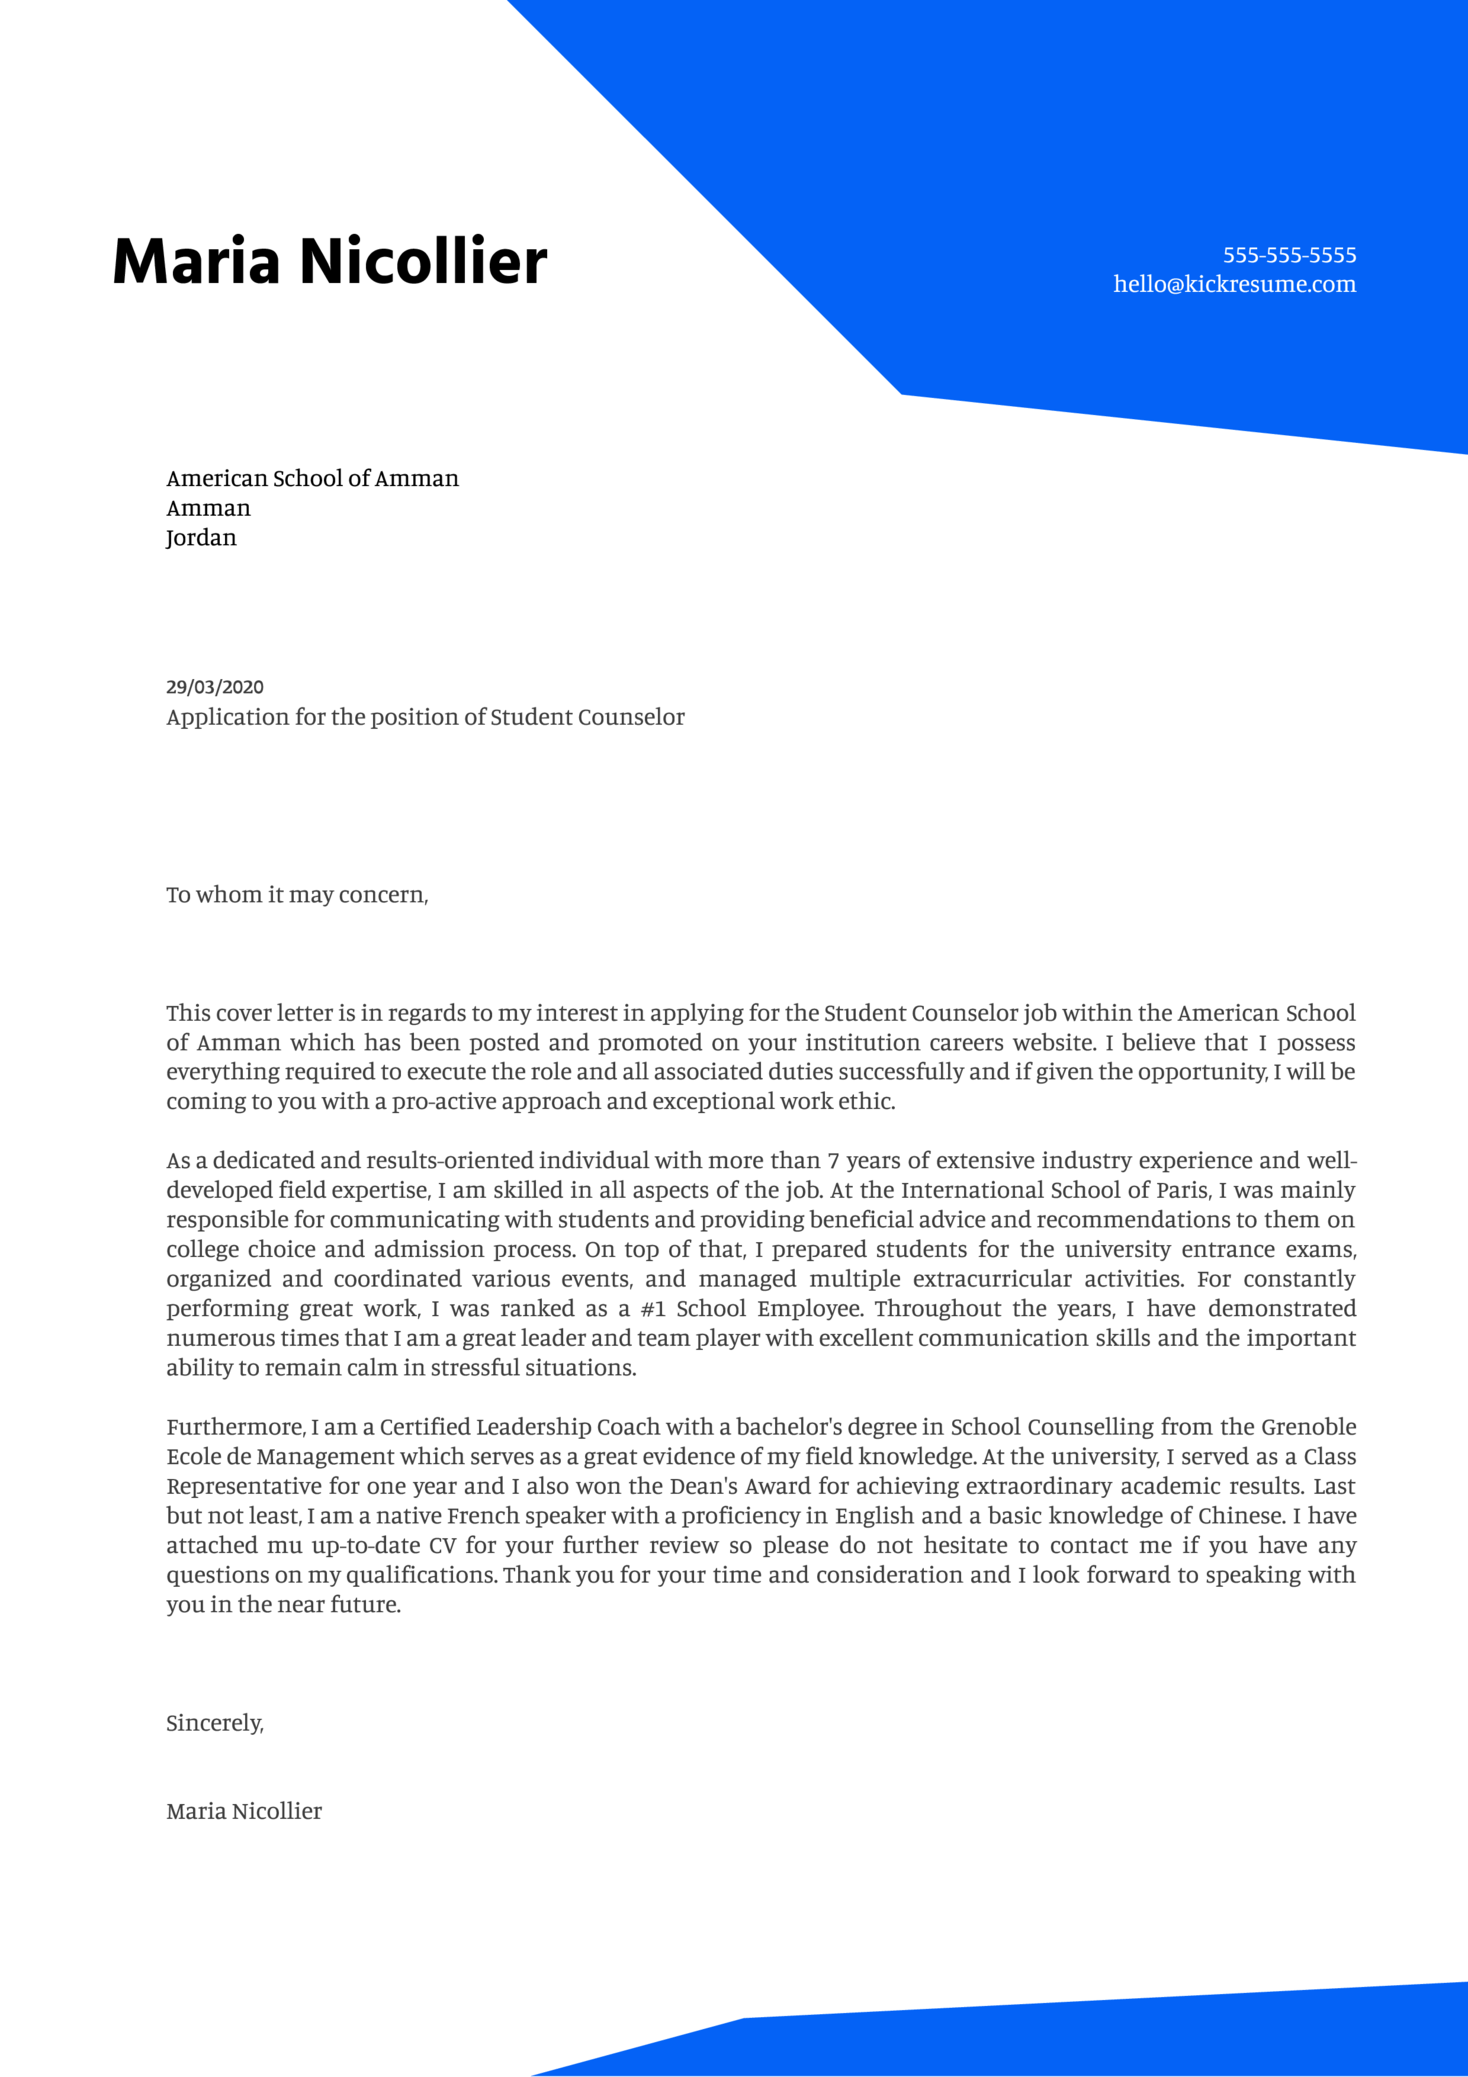 Student Counselor Cover Letter Sample